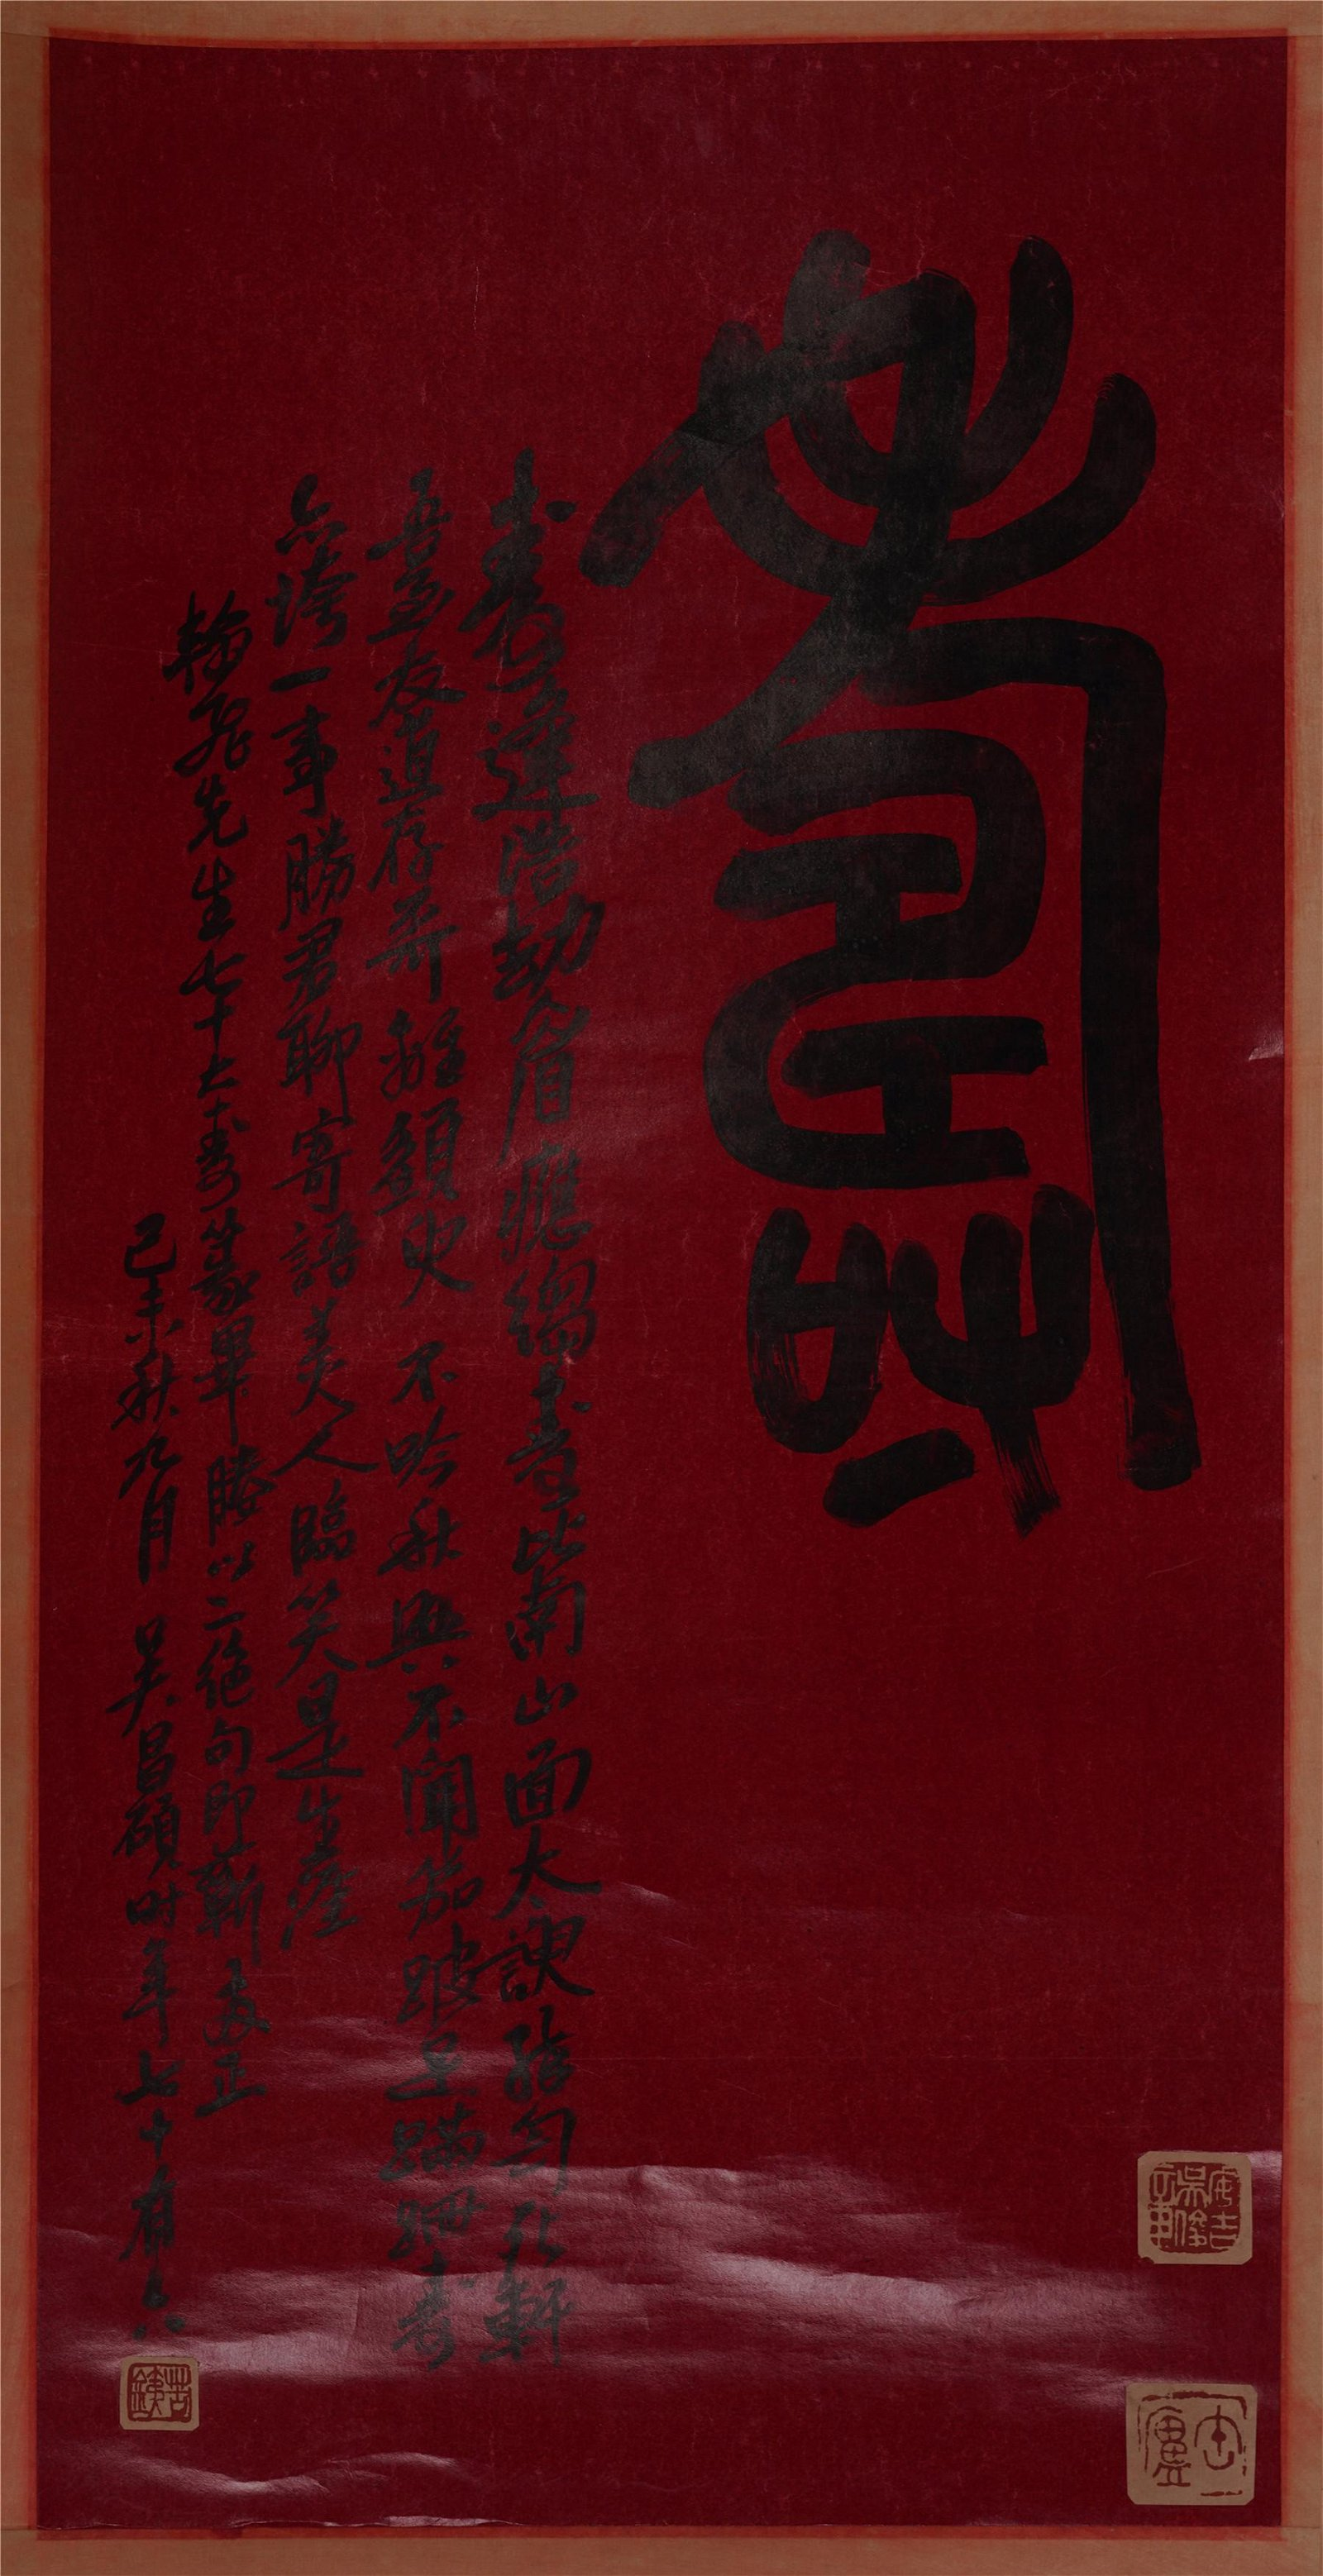 CHINESE SCROLL CALLIGRAPHY ON RED PAPER